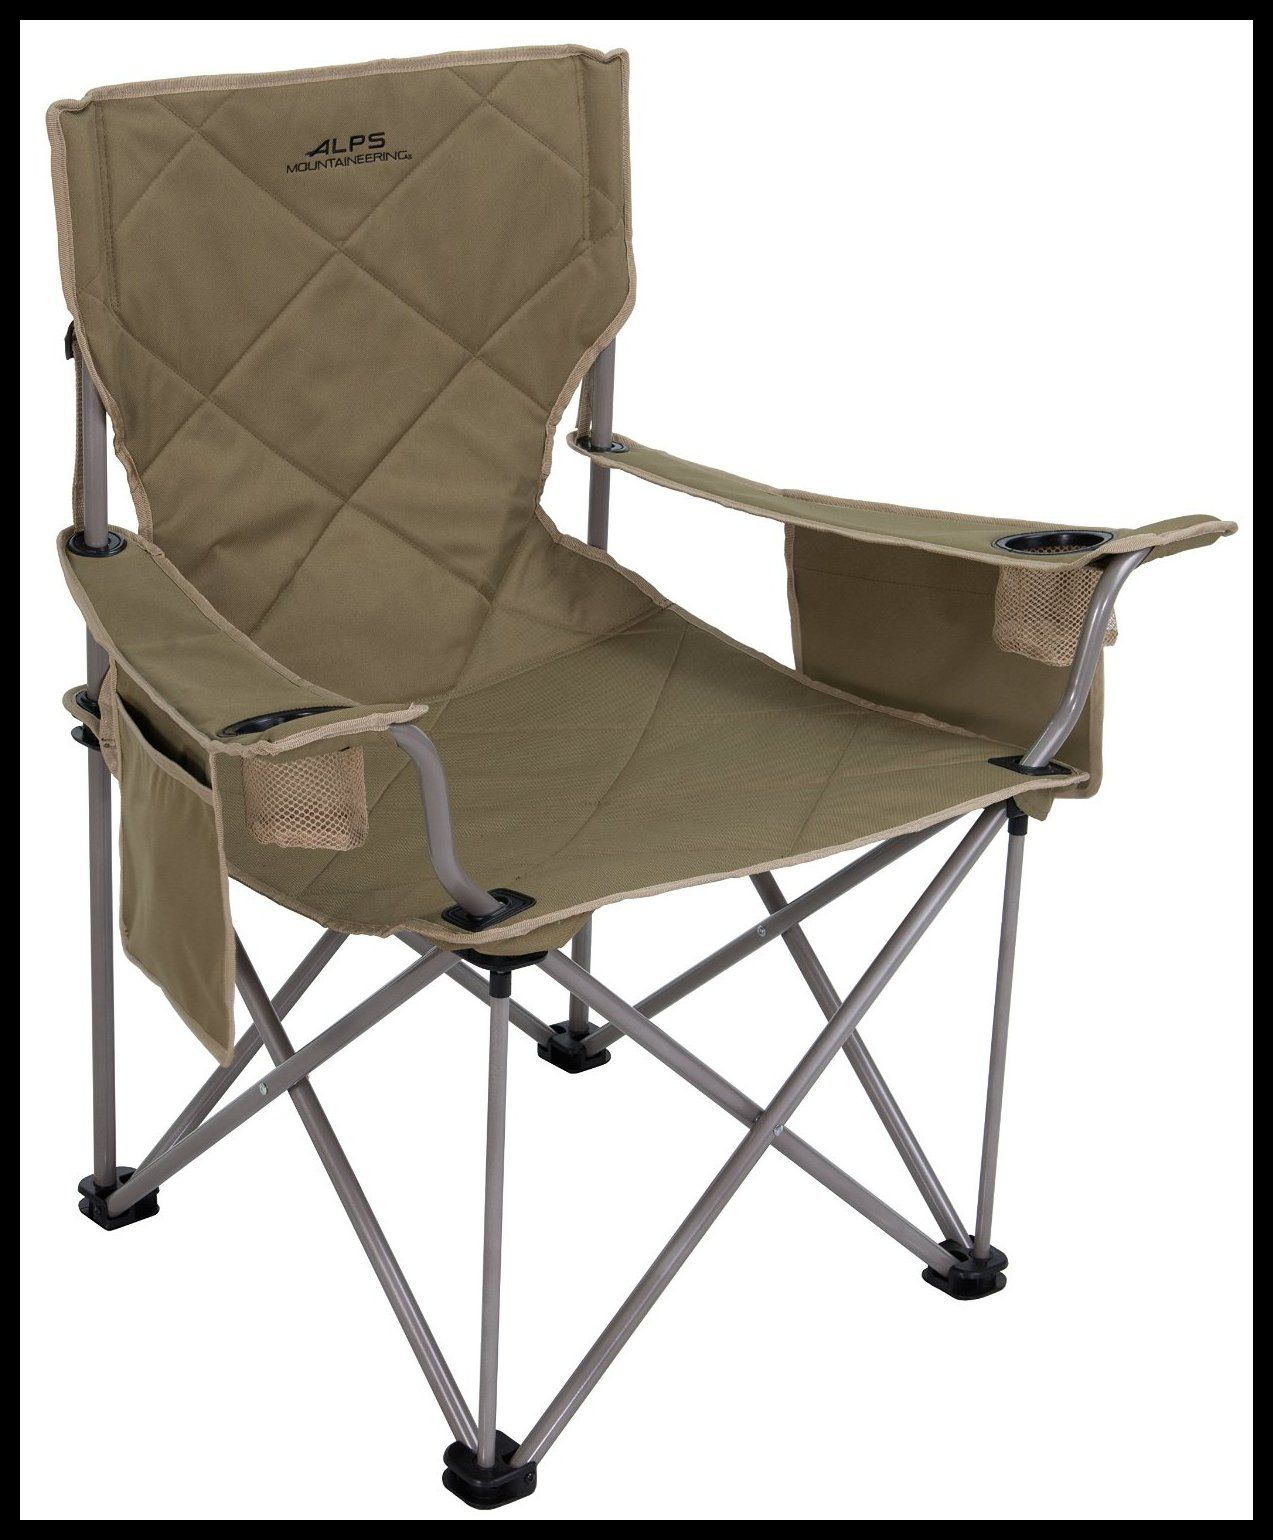 Camping Chairs Table A Folding Camping Table Makes Camping